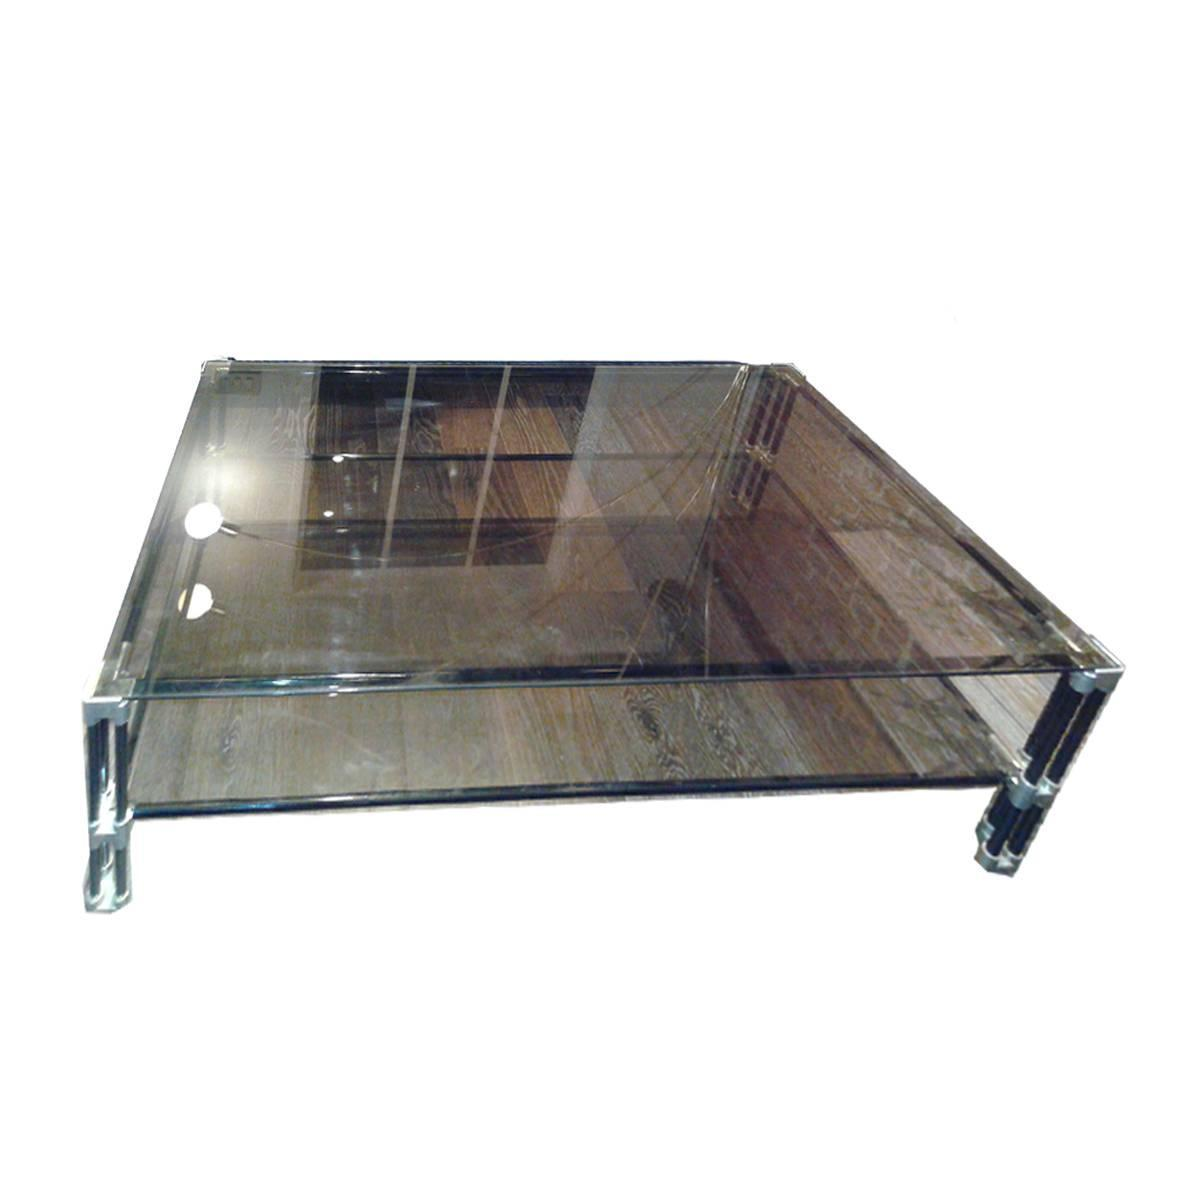 Smoked Glass Coffee Table For Sale At 1stdibs